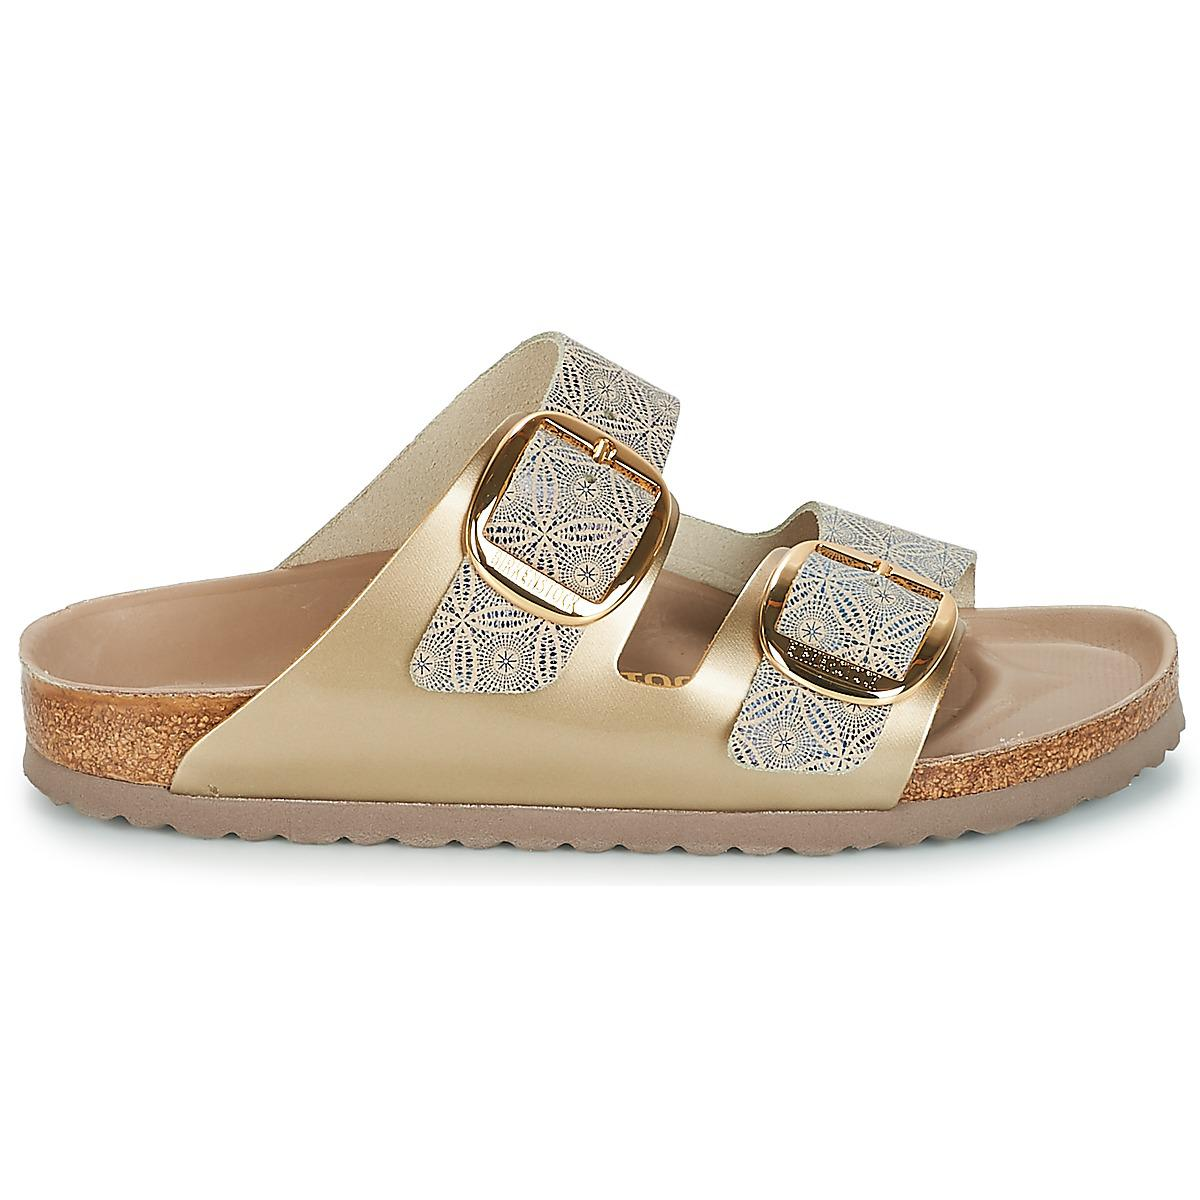 8c3422ae3bf5 Birkenstock - Metallic Arizona Big Buckle Women s Mules   Casual Shoes In  Gold - Lyst. View fullscreen